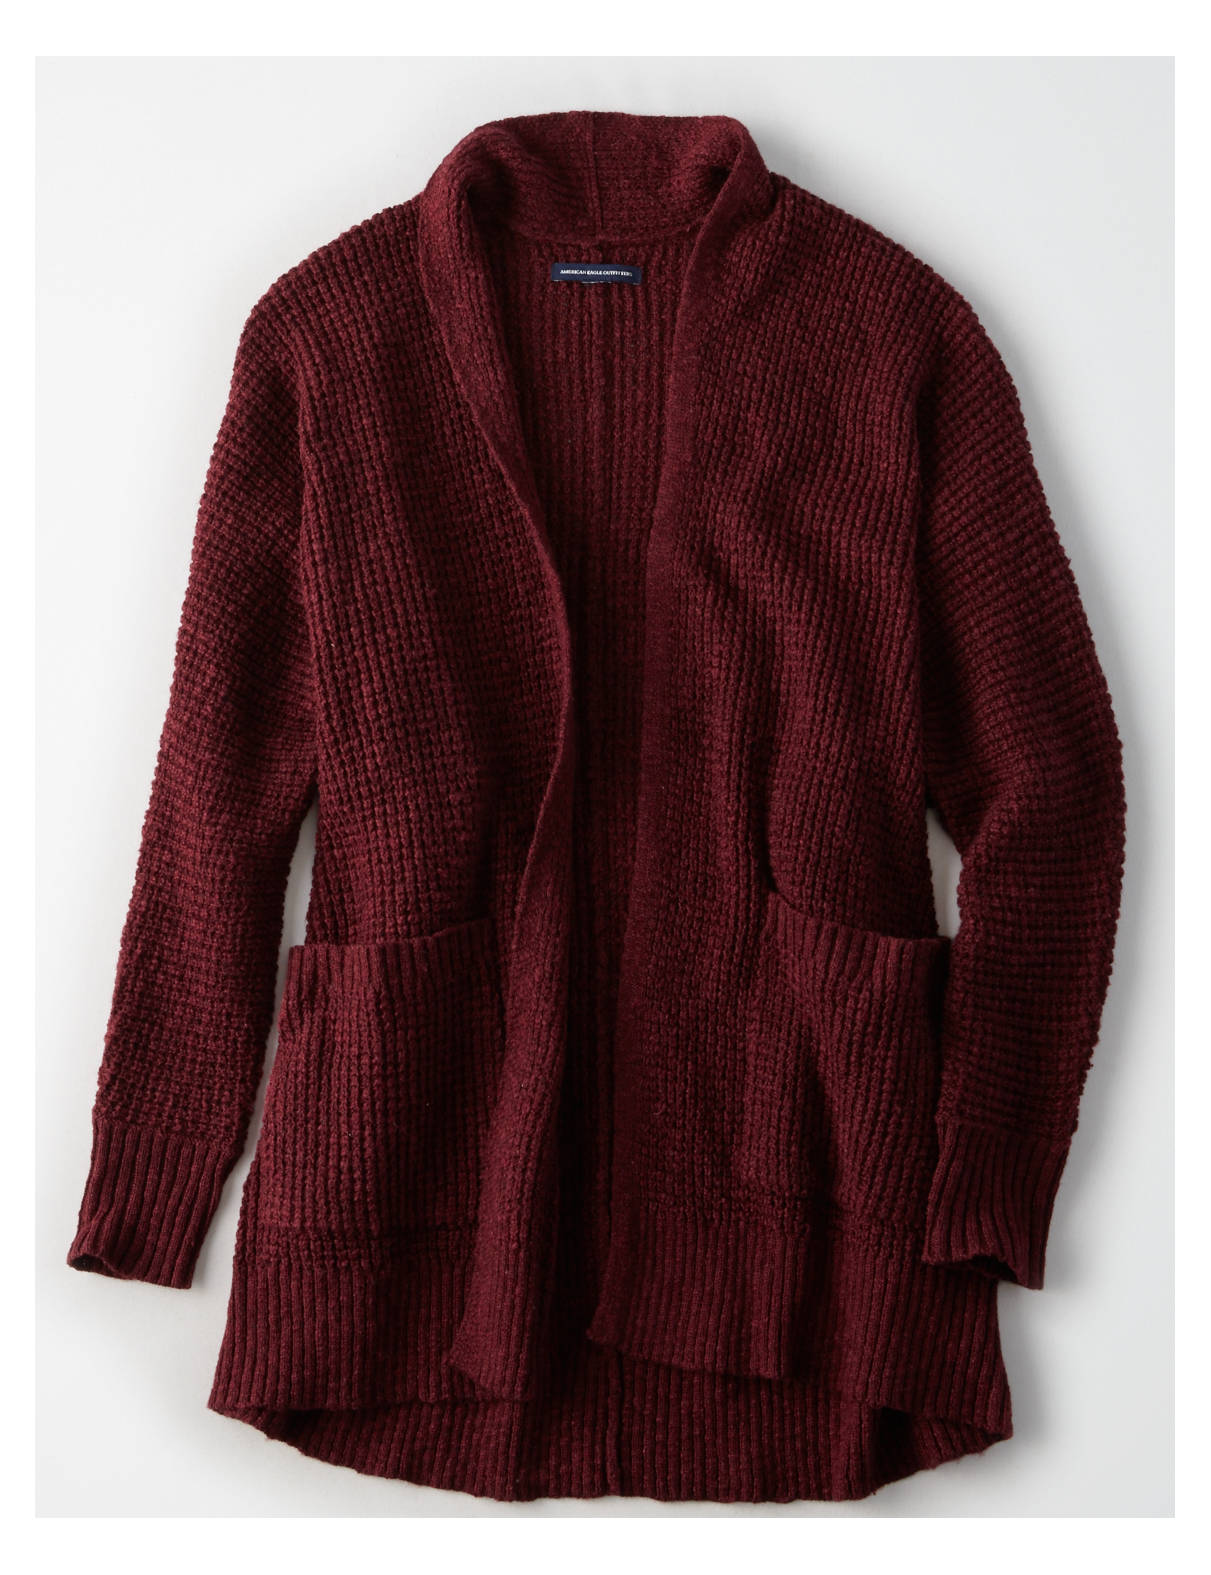 Women's Clearance - Hoodies   Sweaters | American Eagle Outfitters